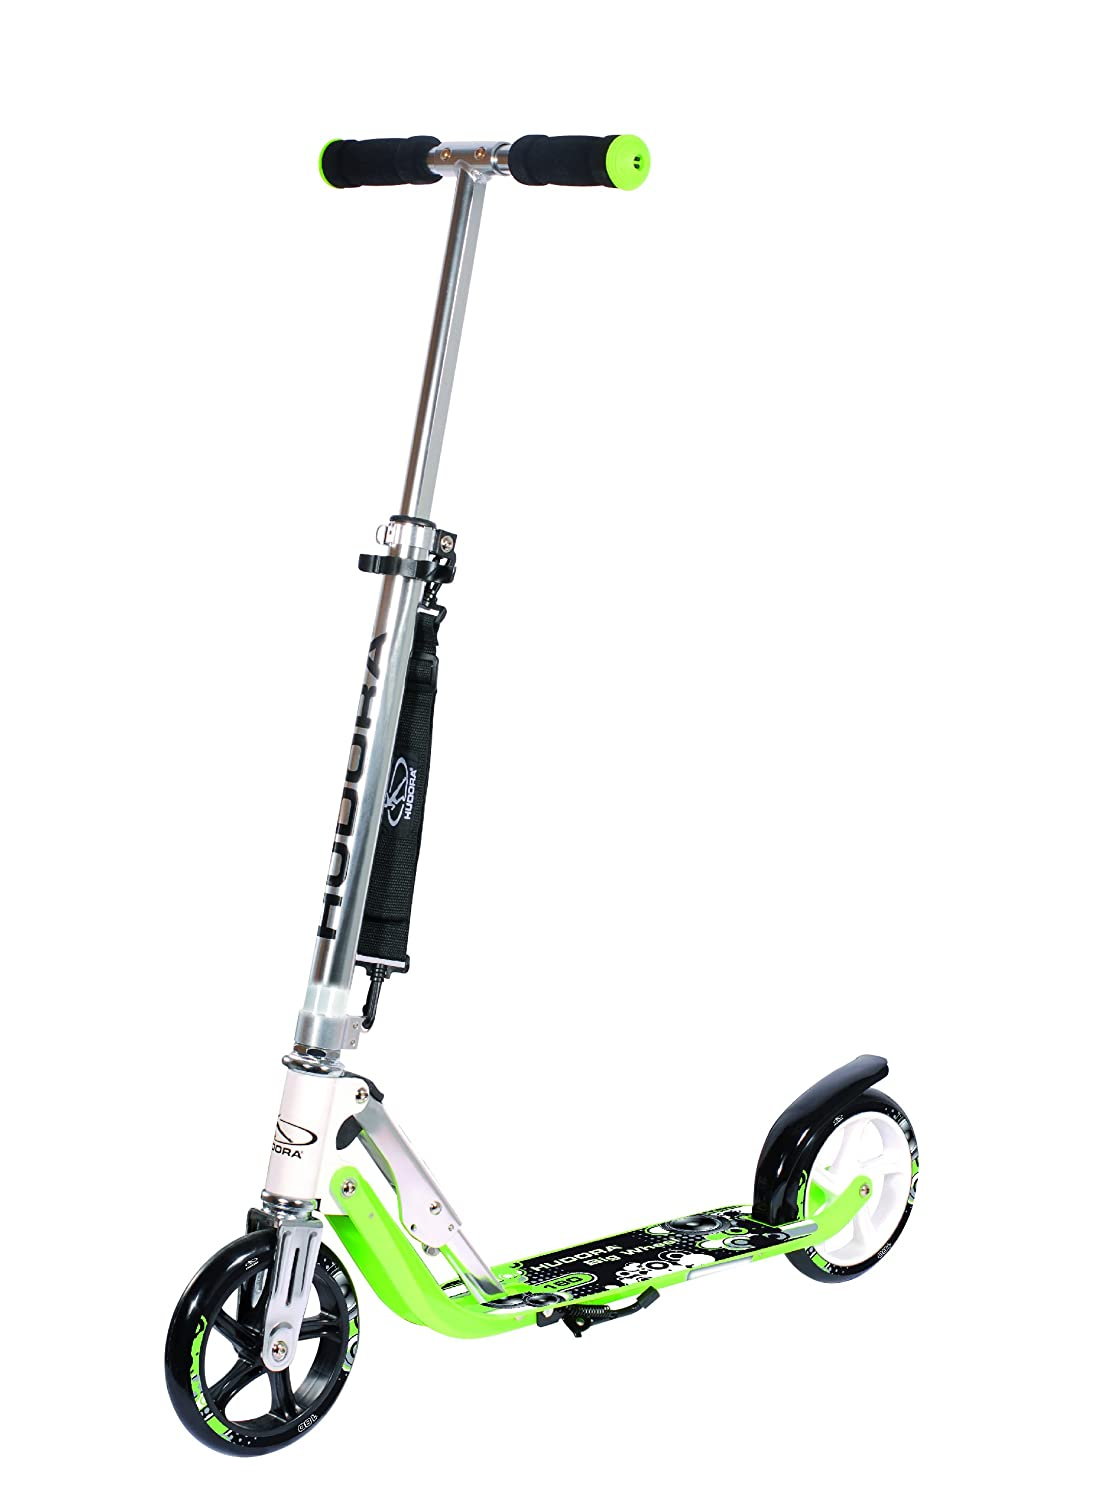 Hudora 180 (14745) Foldable Kick Scooter Height Adjustable Aluminum Scooters with Big PU Wheels